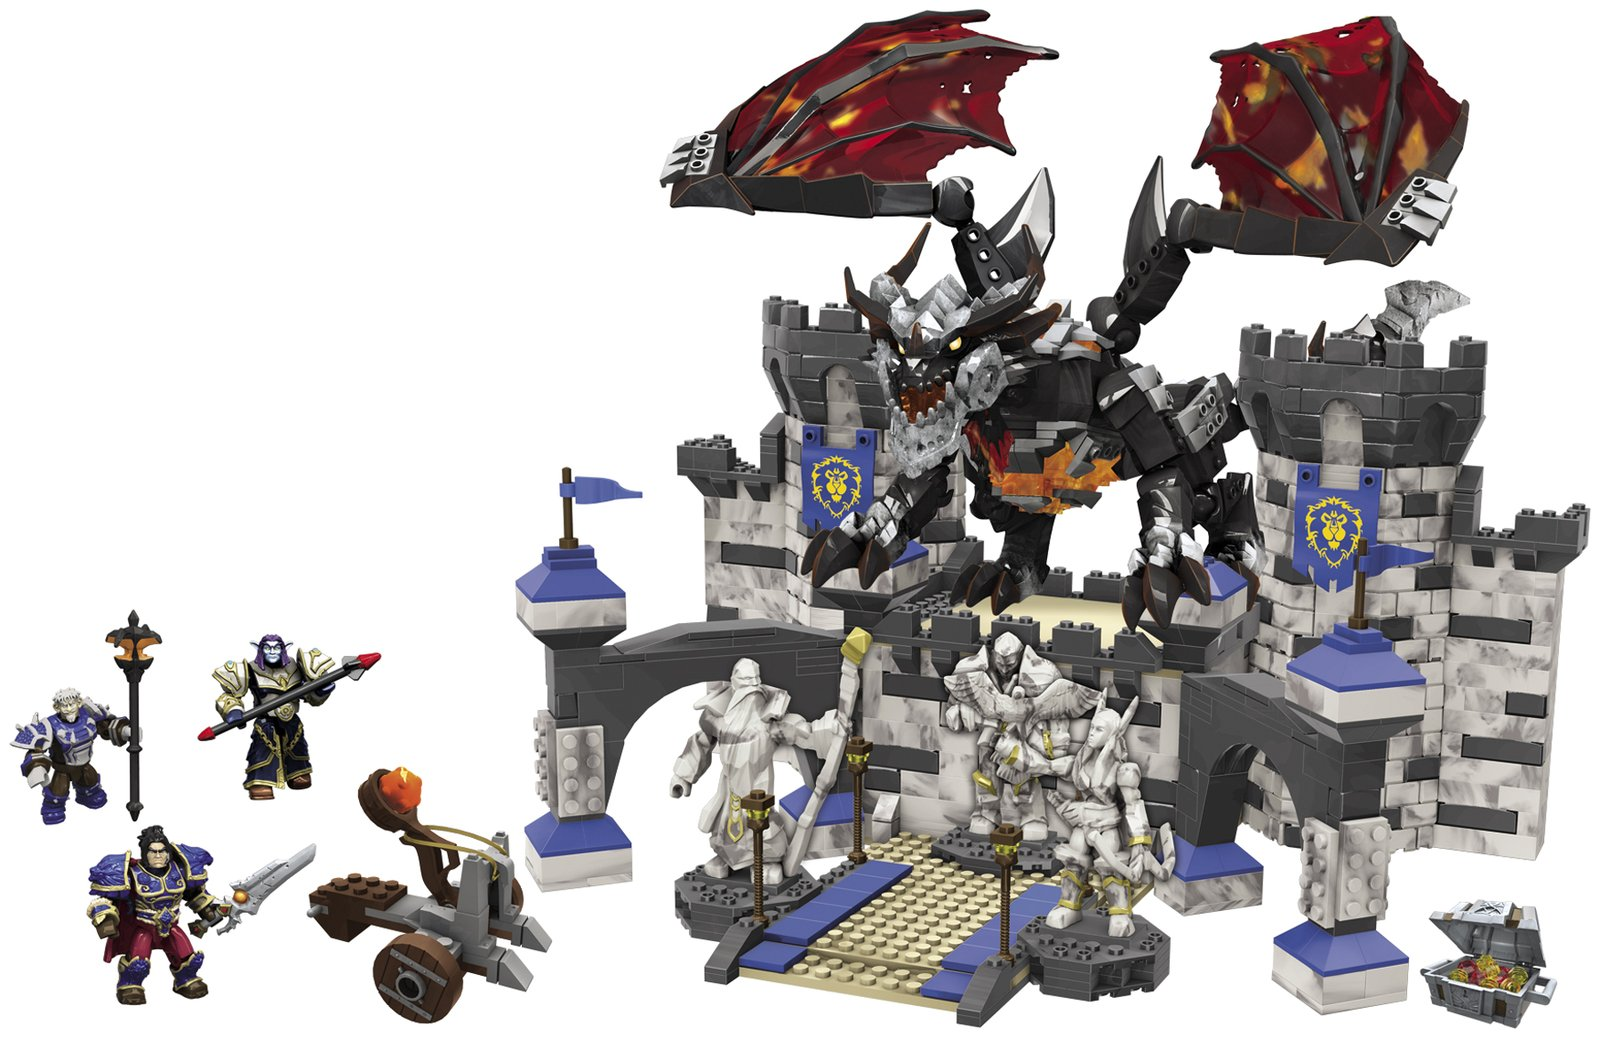 30% off Two or More Mega Bloks Halo or World of Warcraft